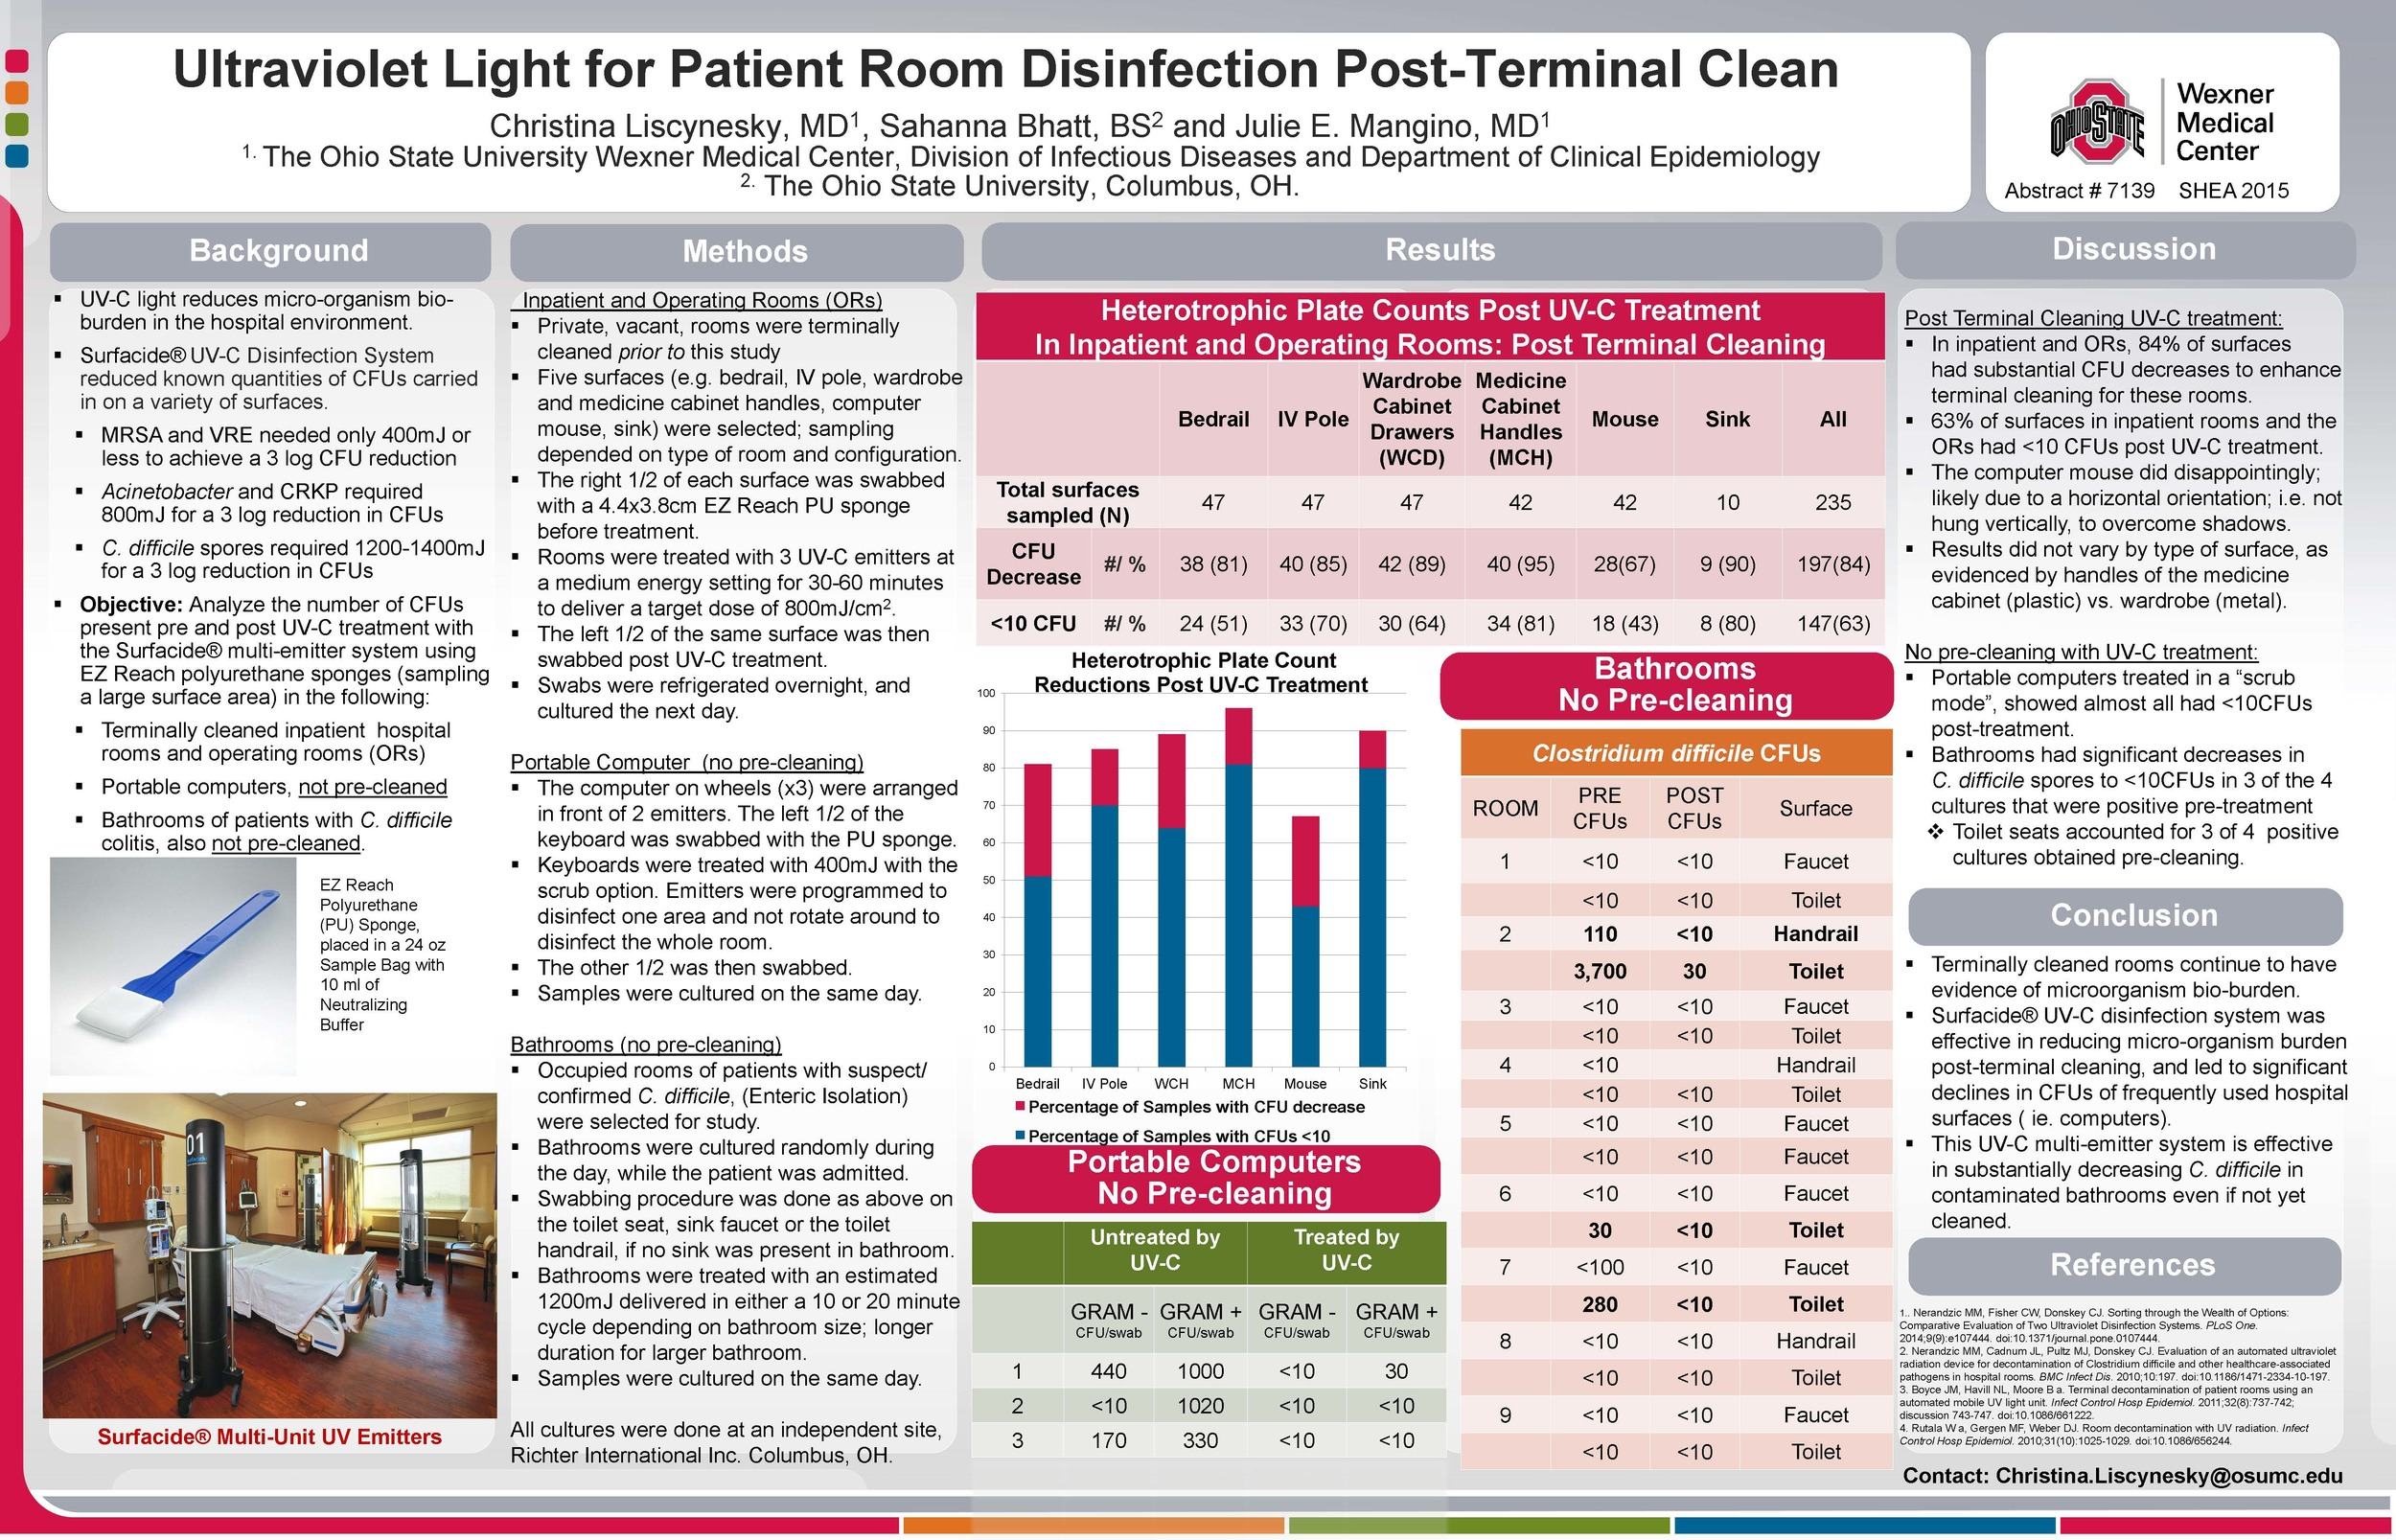 Ultraviolet light for patient room disinfection post-terminal clean.